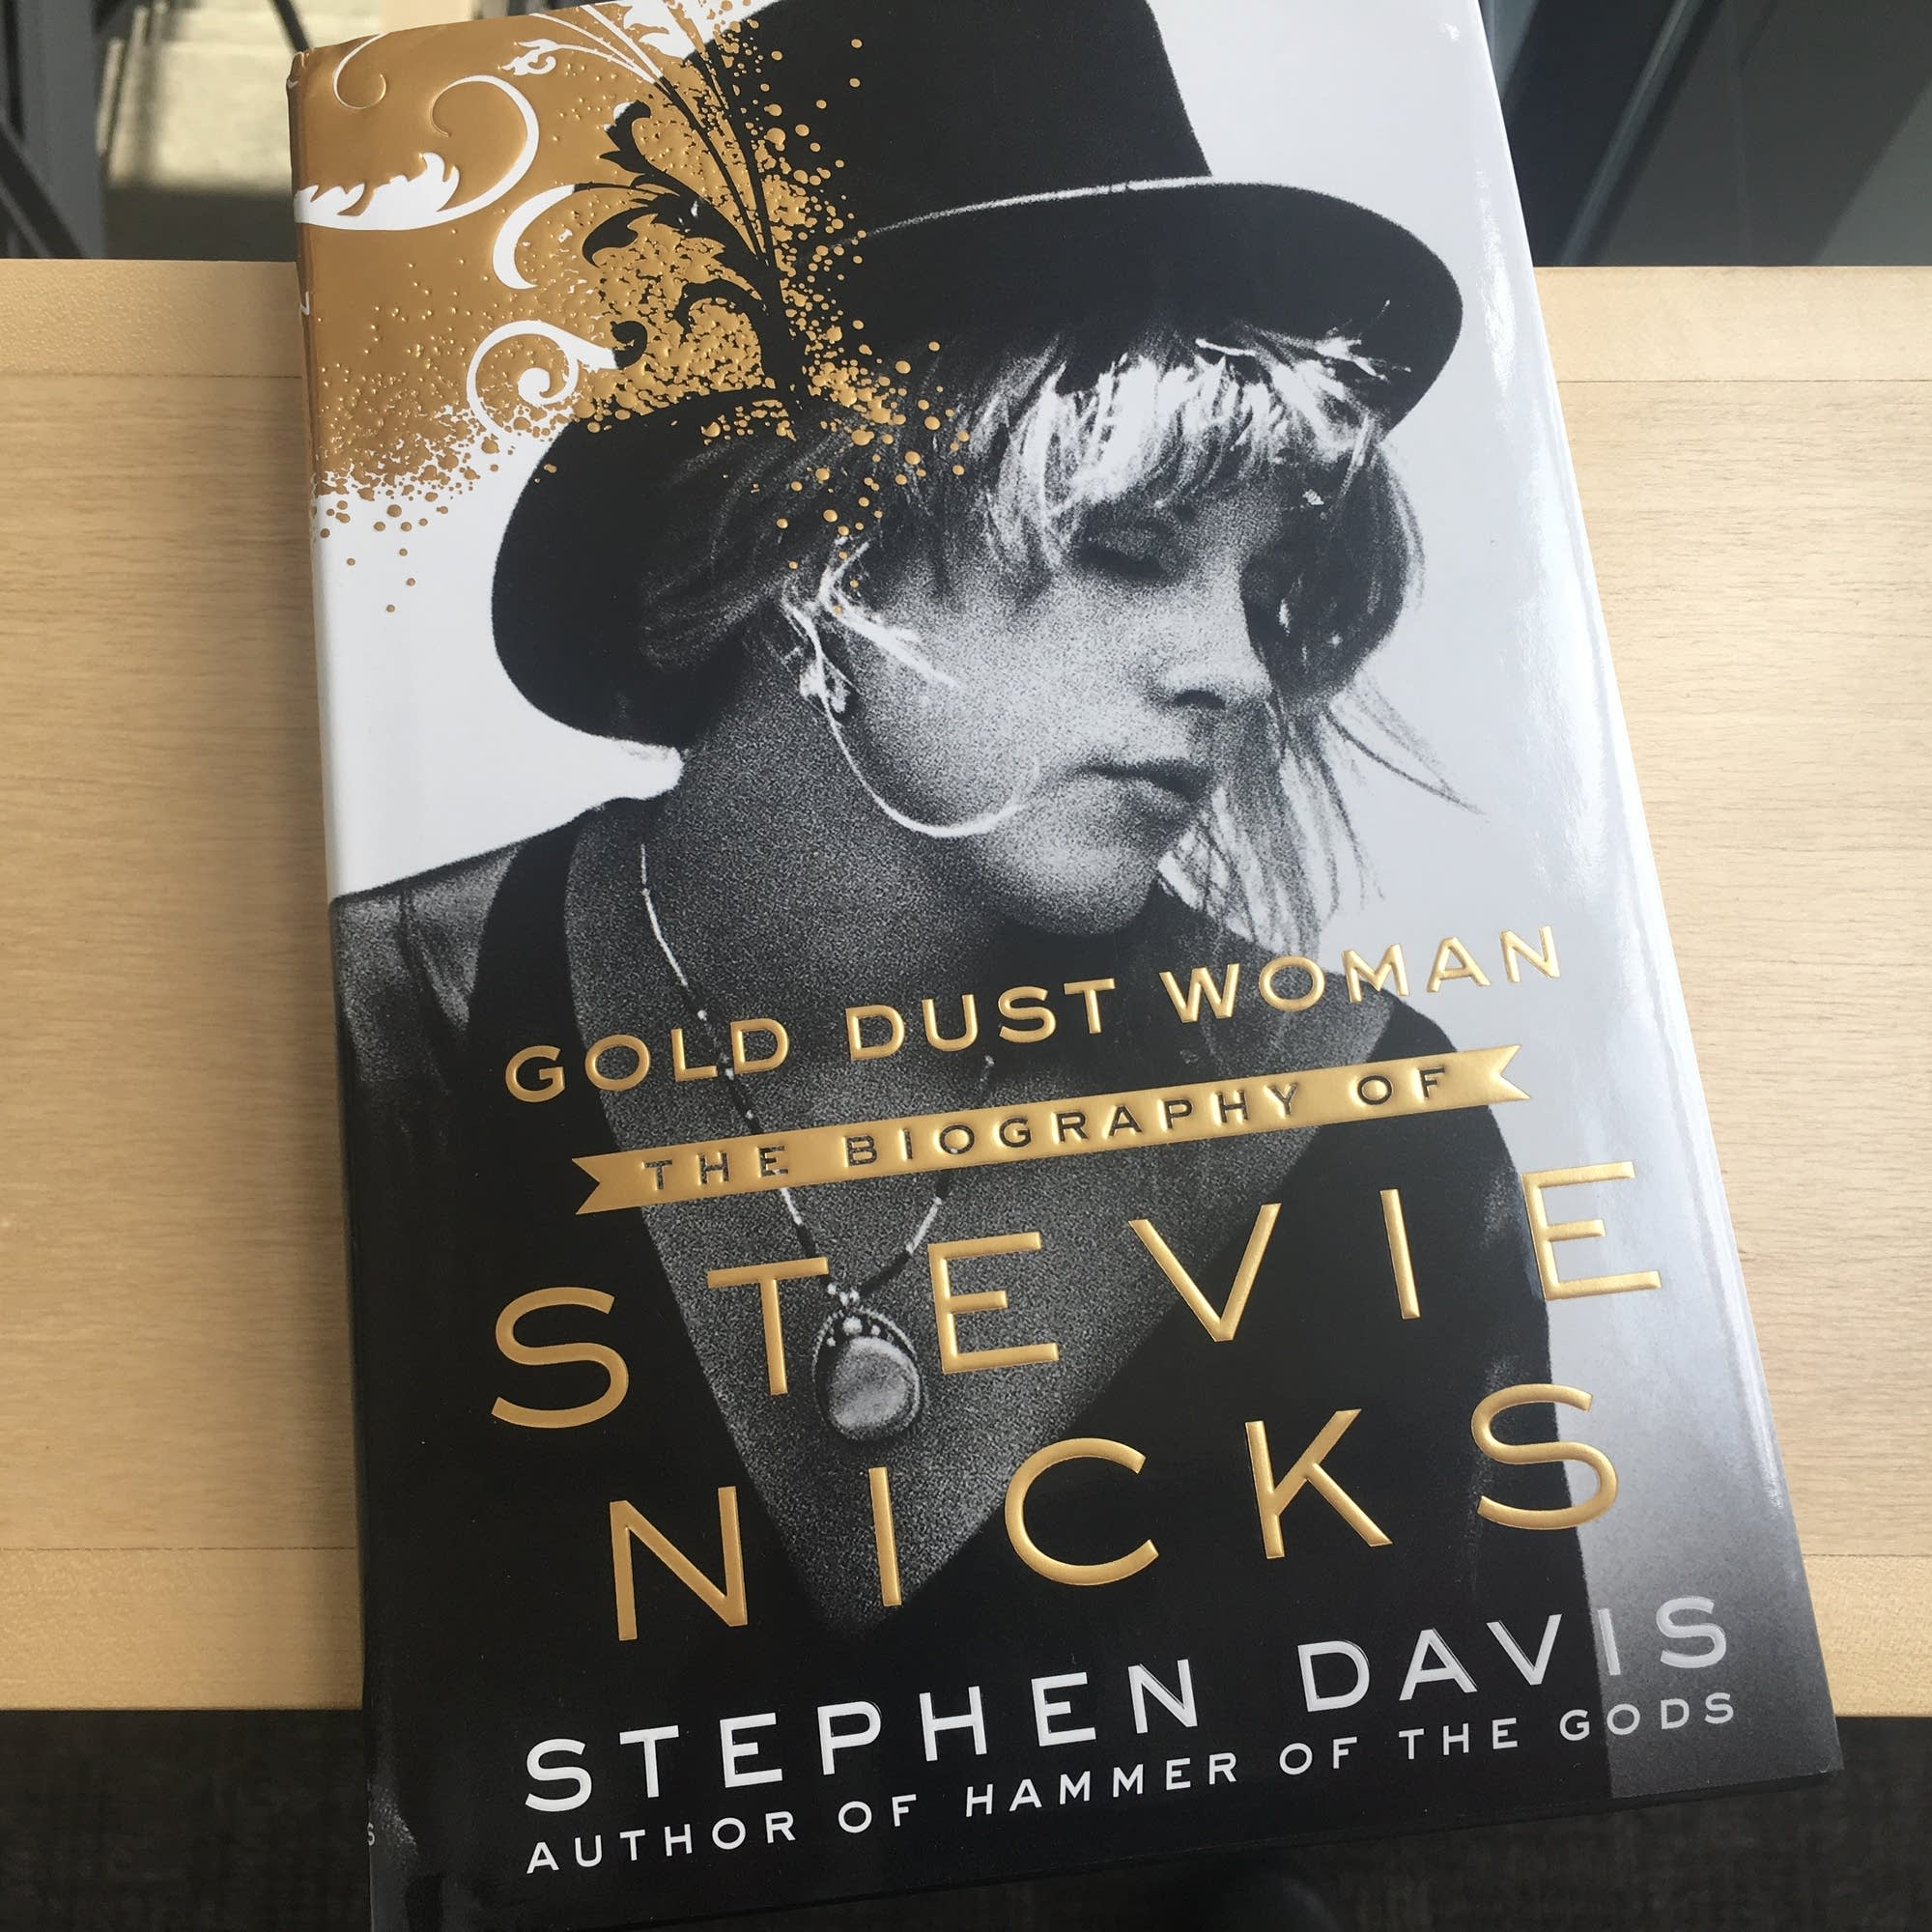 'Gold Dust Woman: The Biography of Stevie Nicks.'